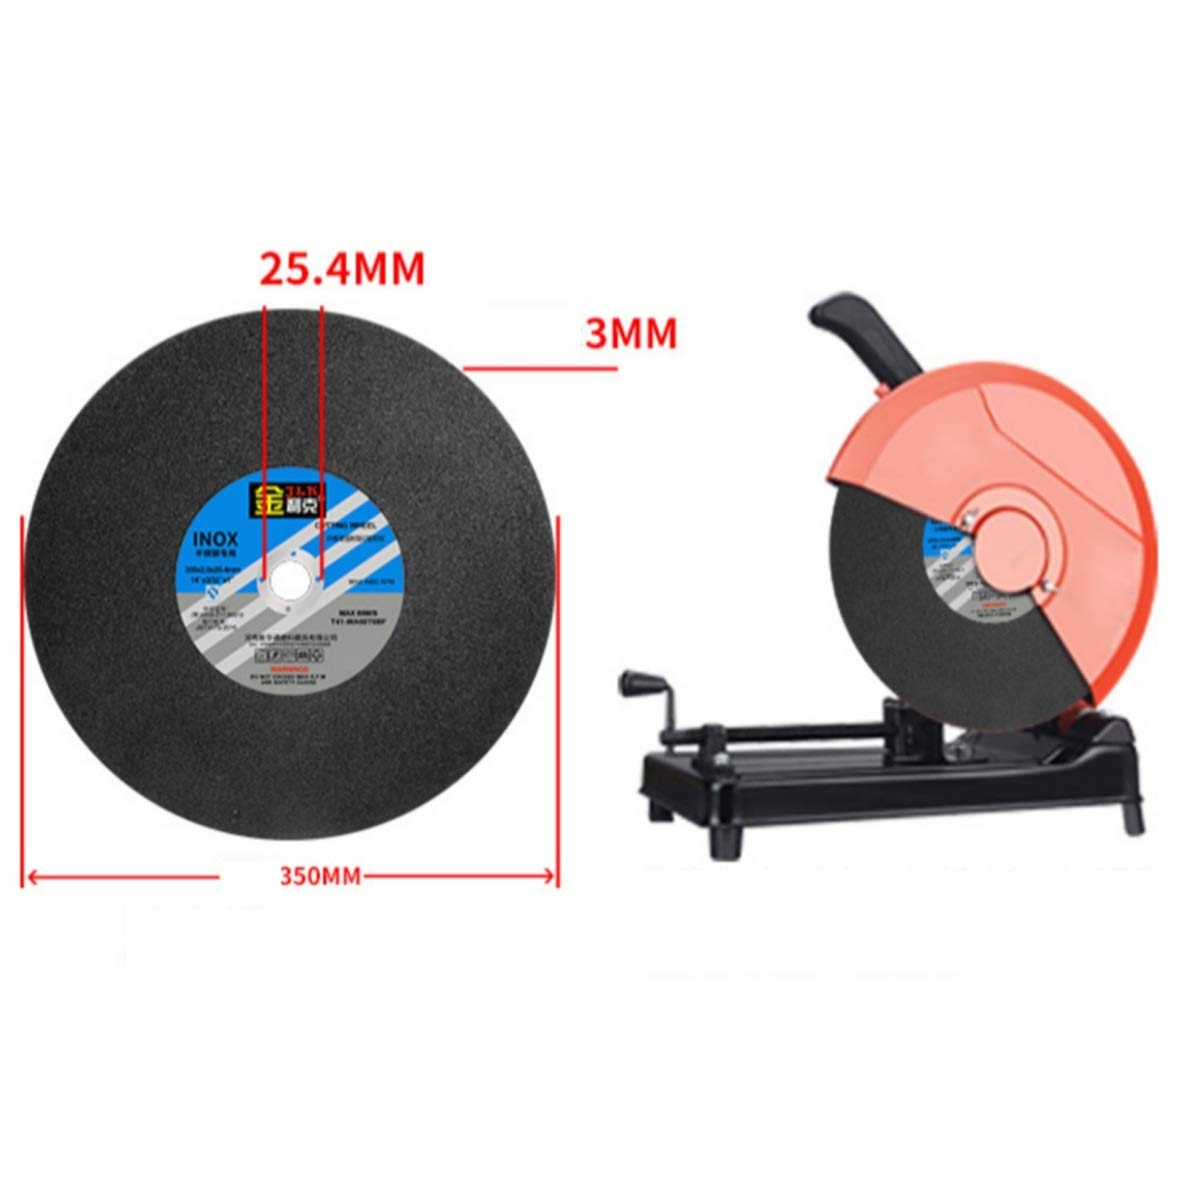 5 Per Pack CHENTAOCS Cutting Machine Cutting Blade 350 400 Grinding Wheel Metal Stainless Steel Grinding Wheel Size : 35025.43 mm